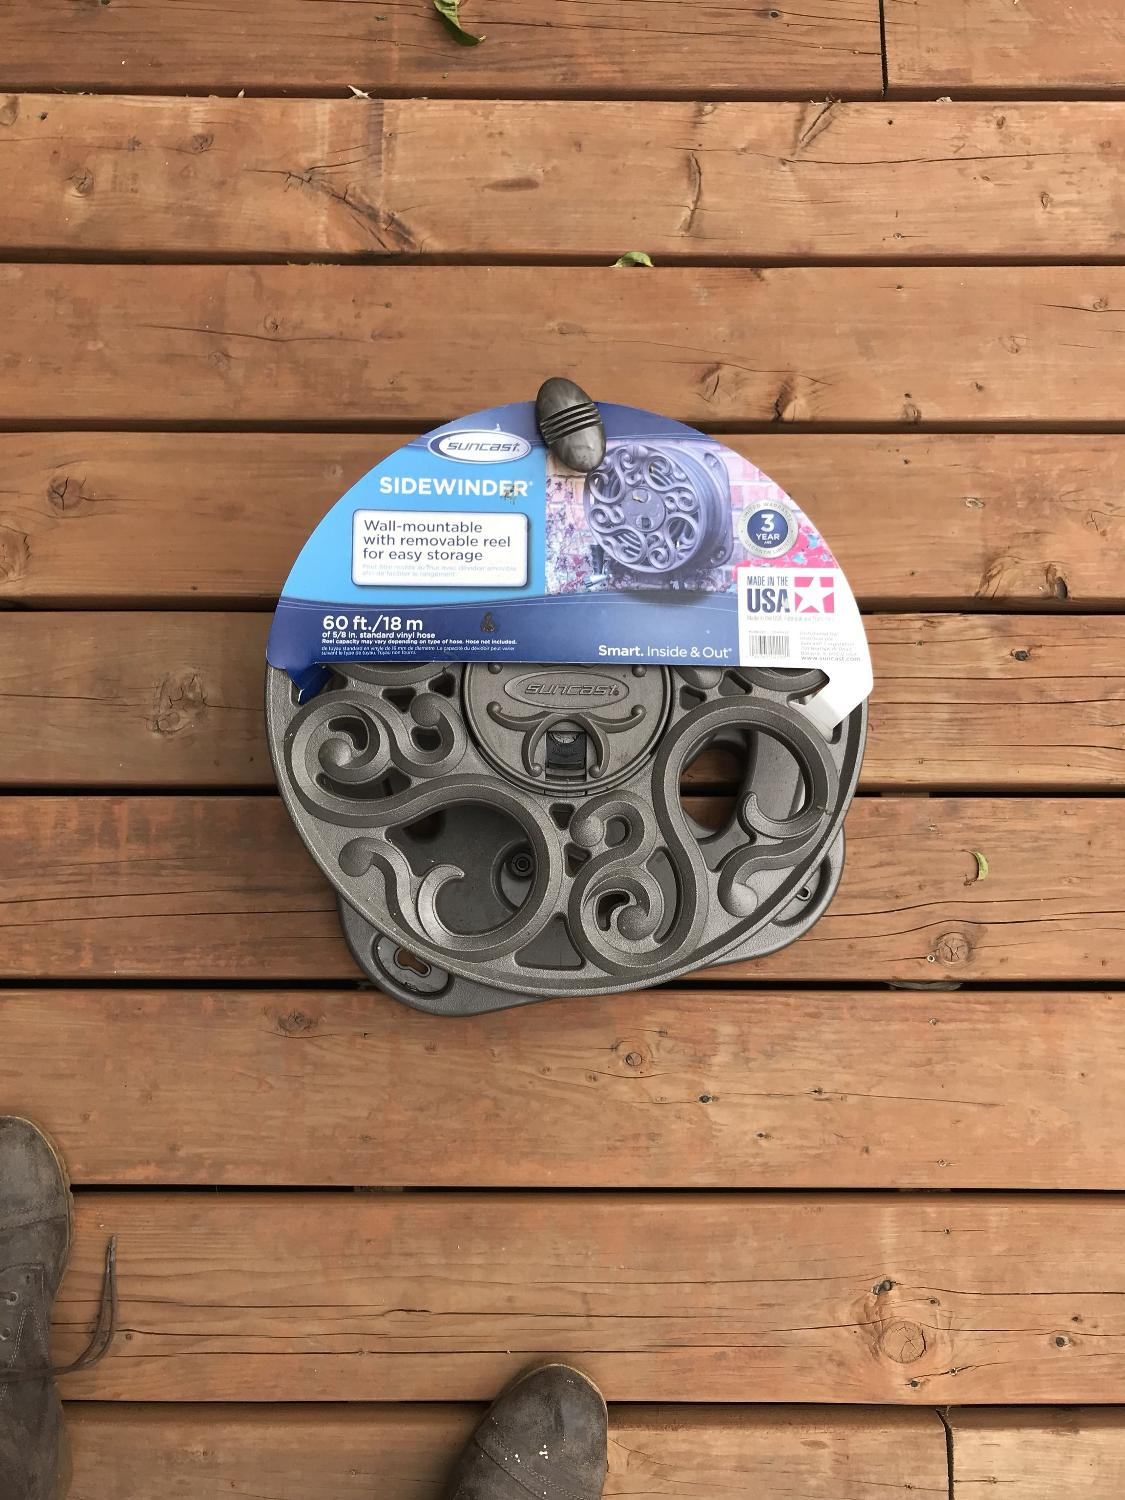 Best New Hose Reel for sale in Victoria, British Columbia for 2018